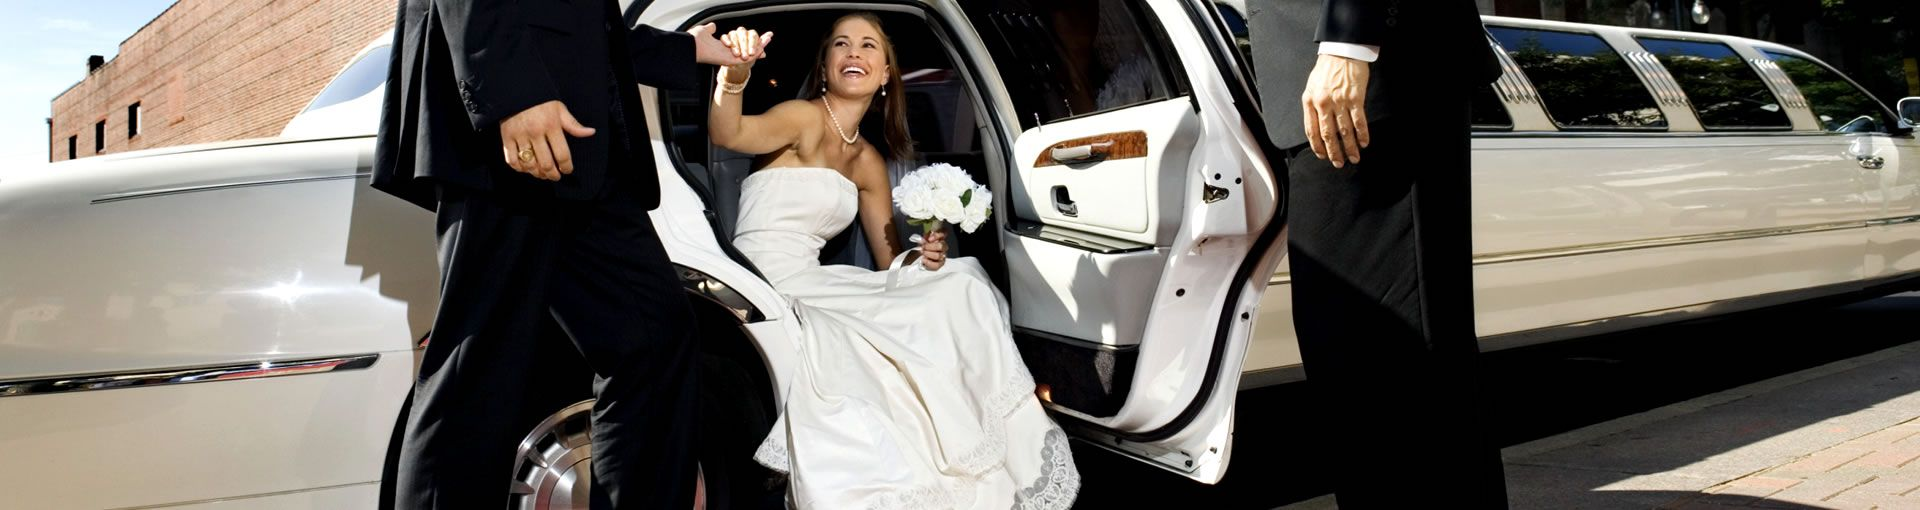 Weddings Transportation Tampa Wedding Limo Services